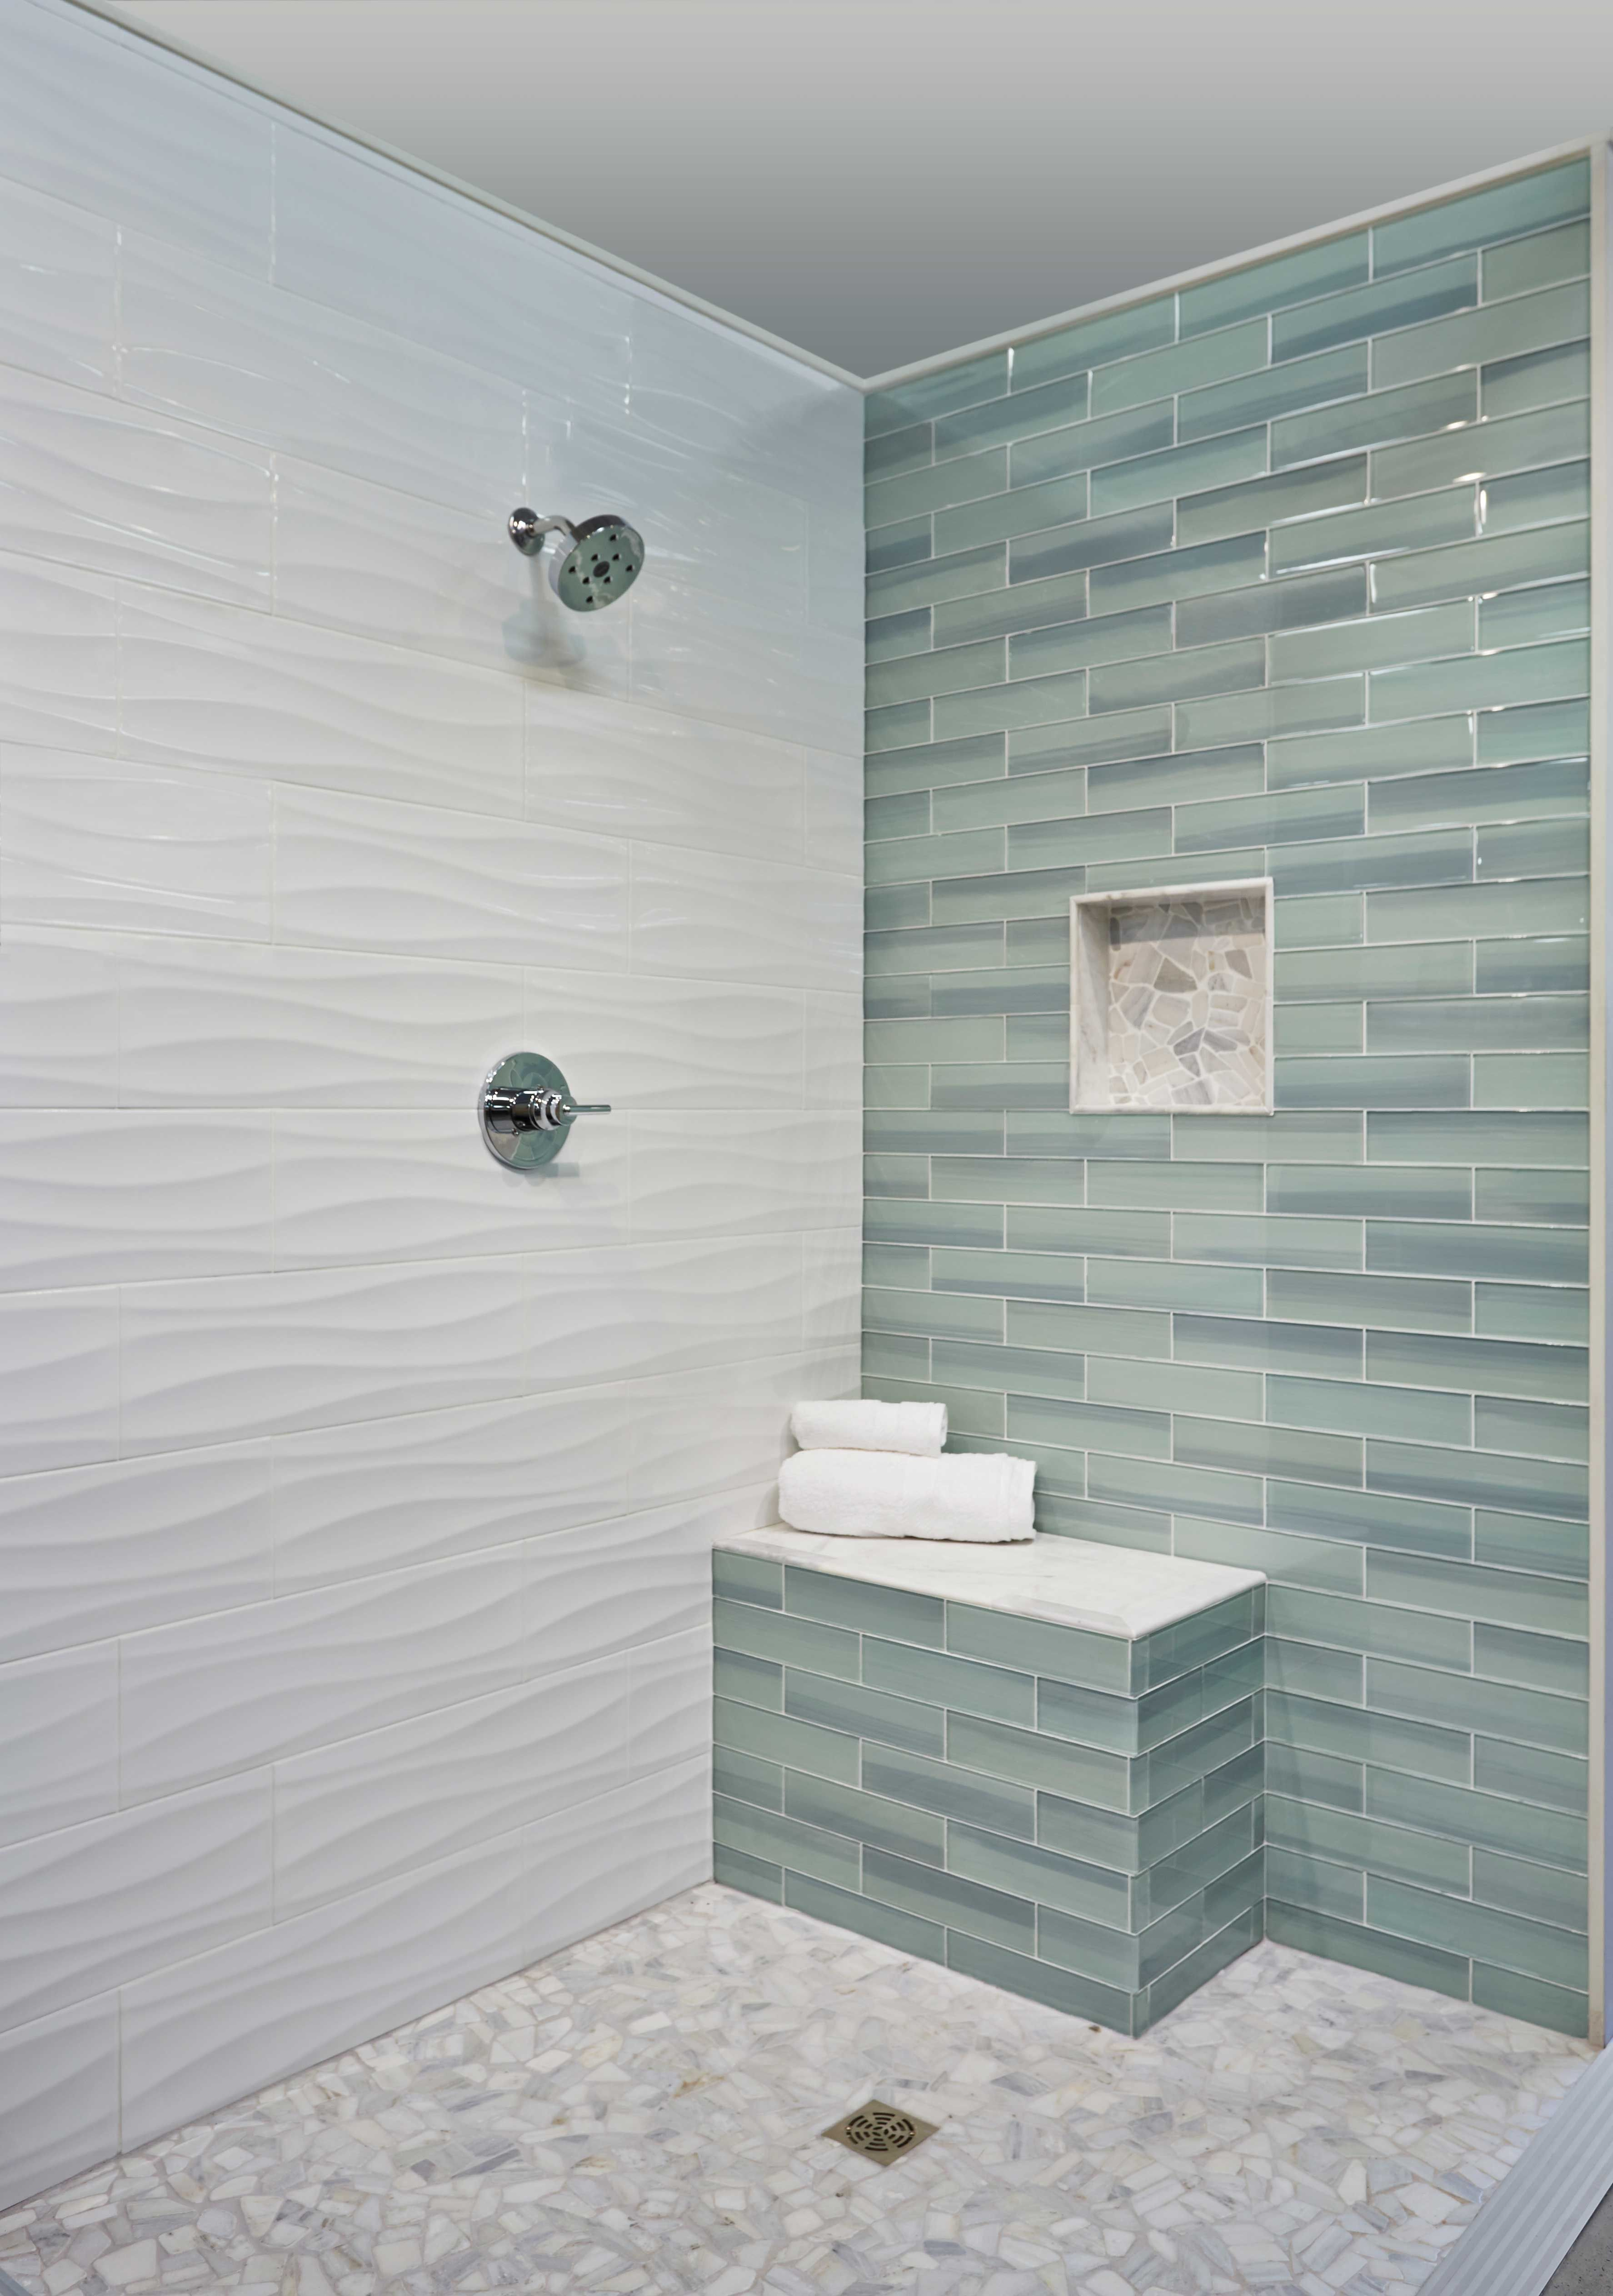 How to do wall tile in bathroom - Bathroom Shower Wall Tile New Haven Glass Subway Tile Https Www